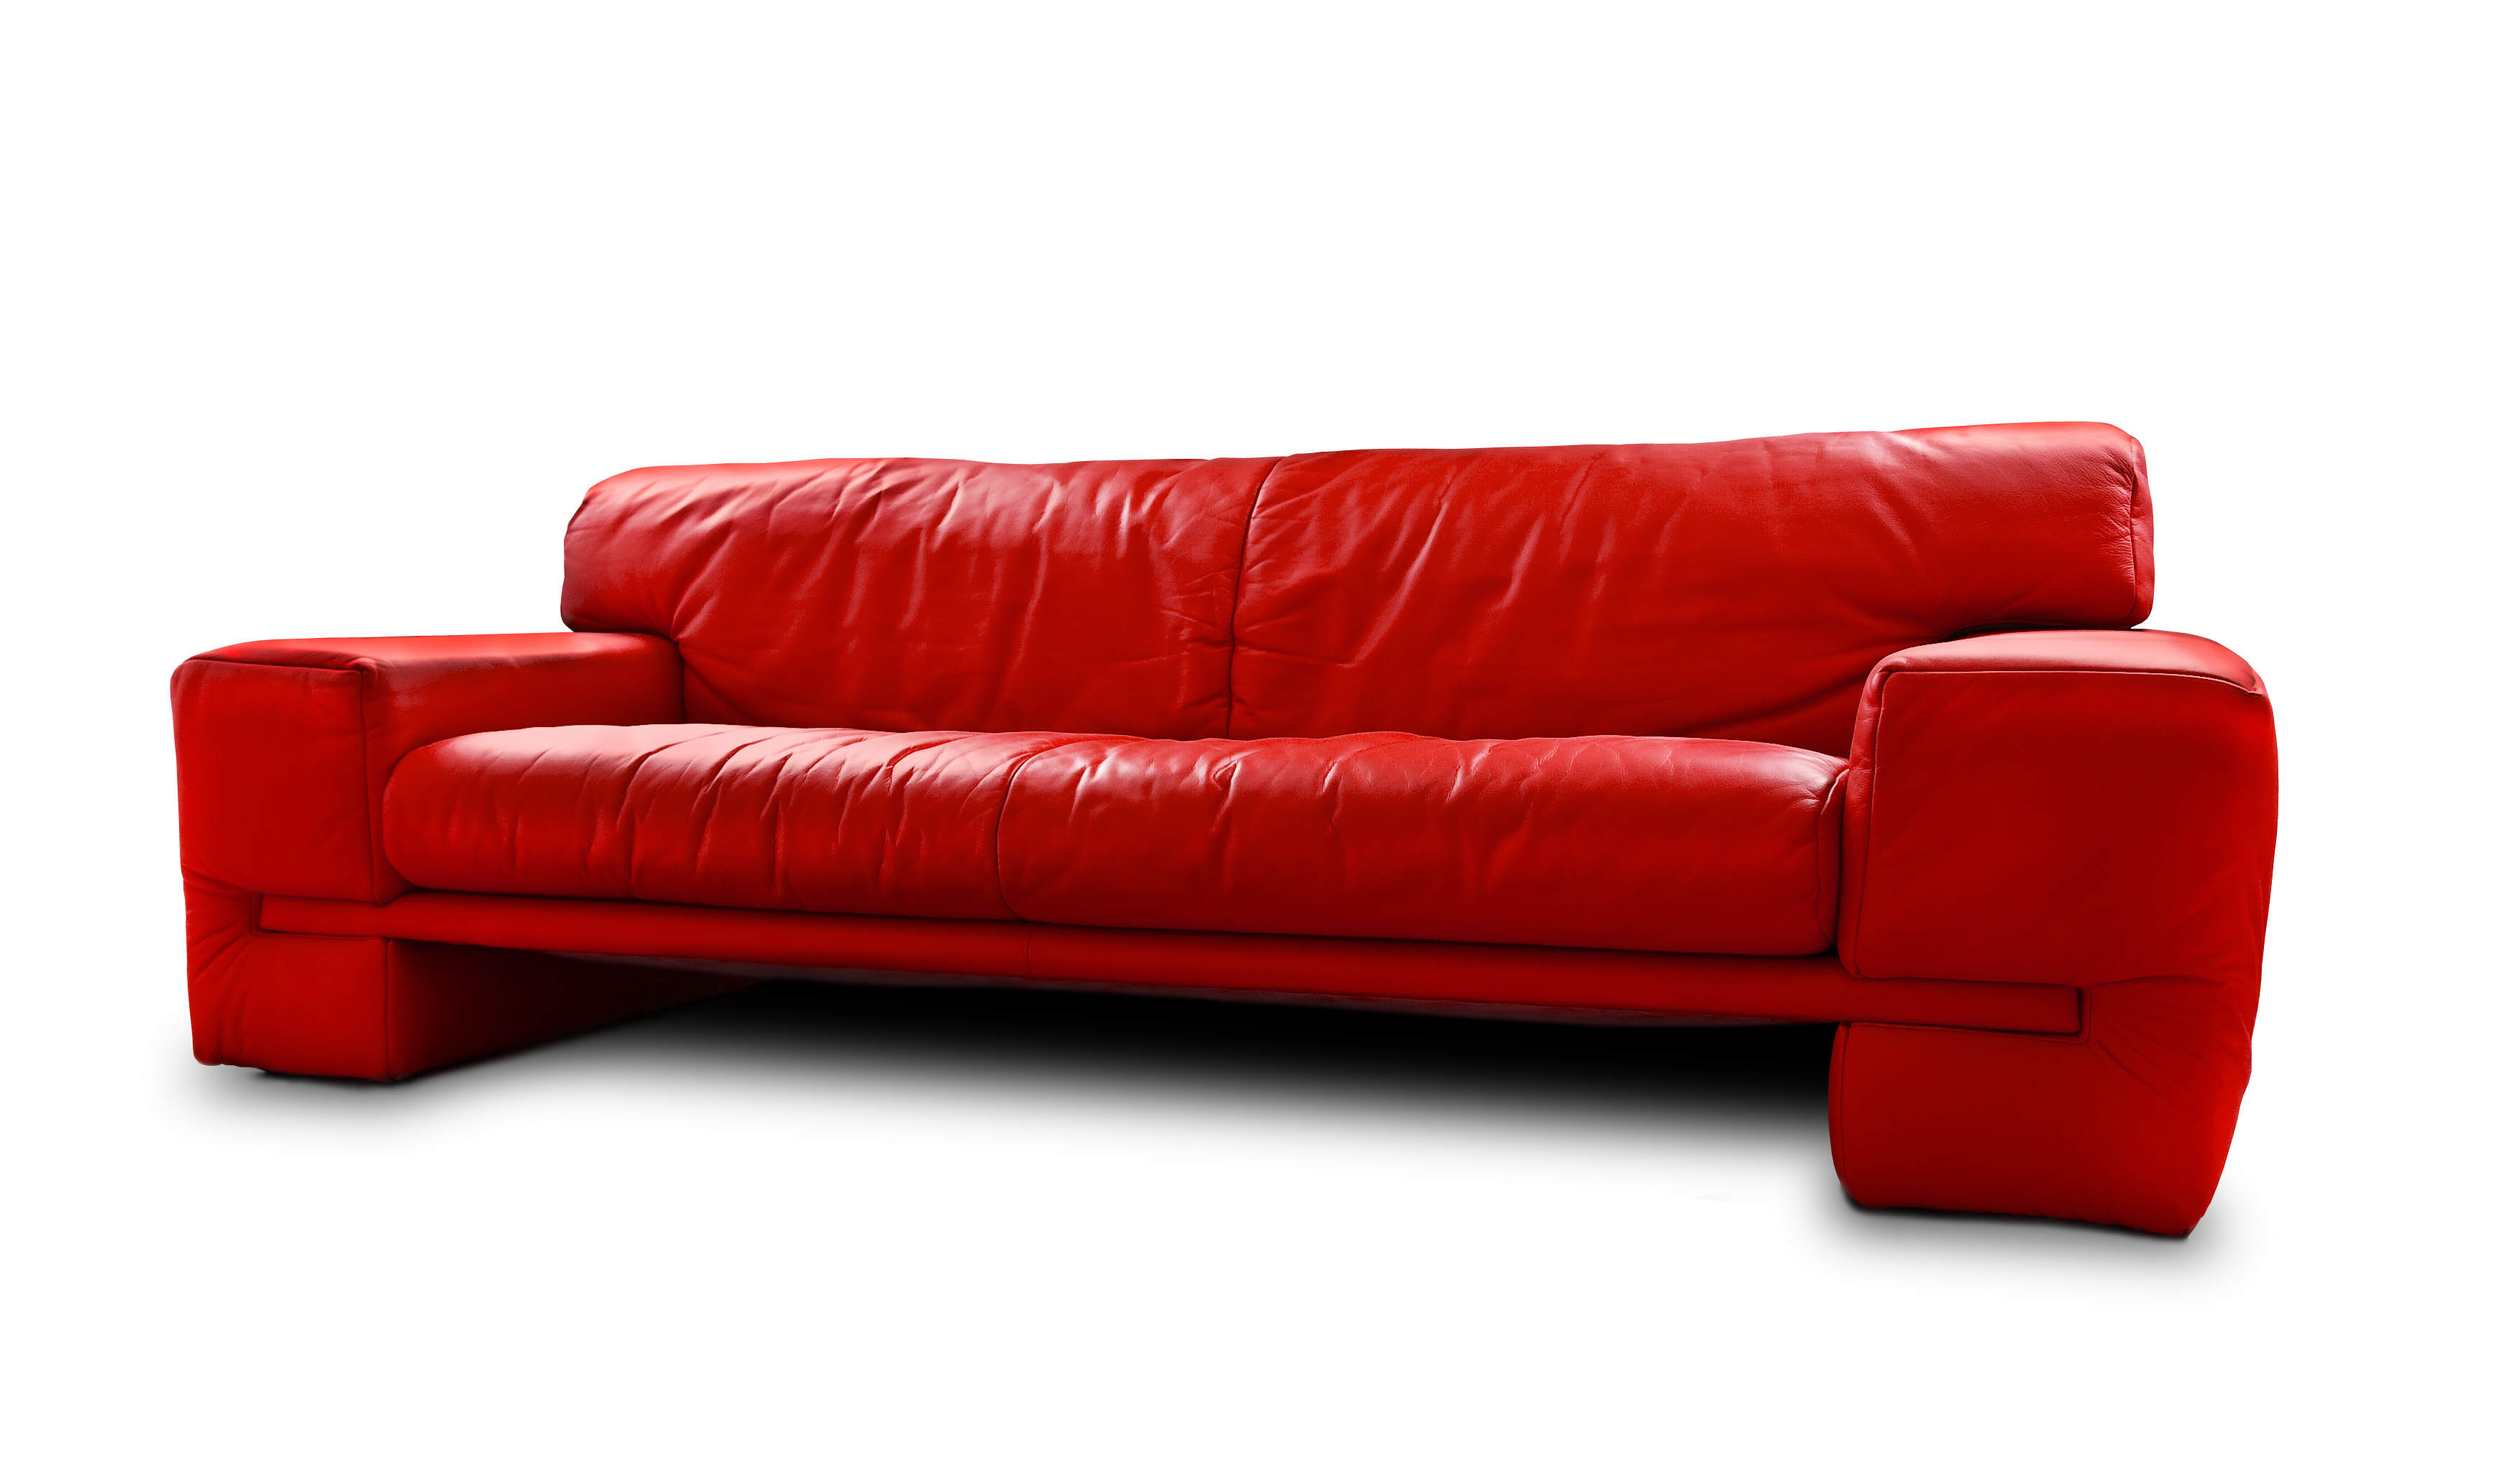 Soulmates and Red Couches